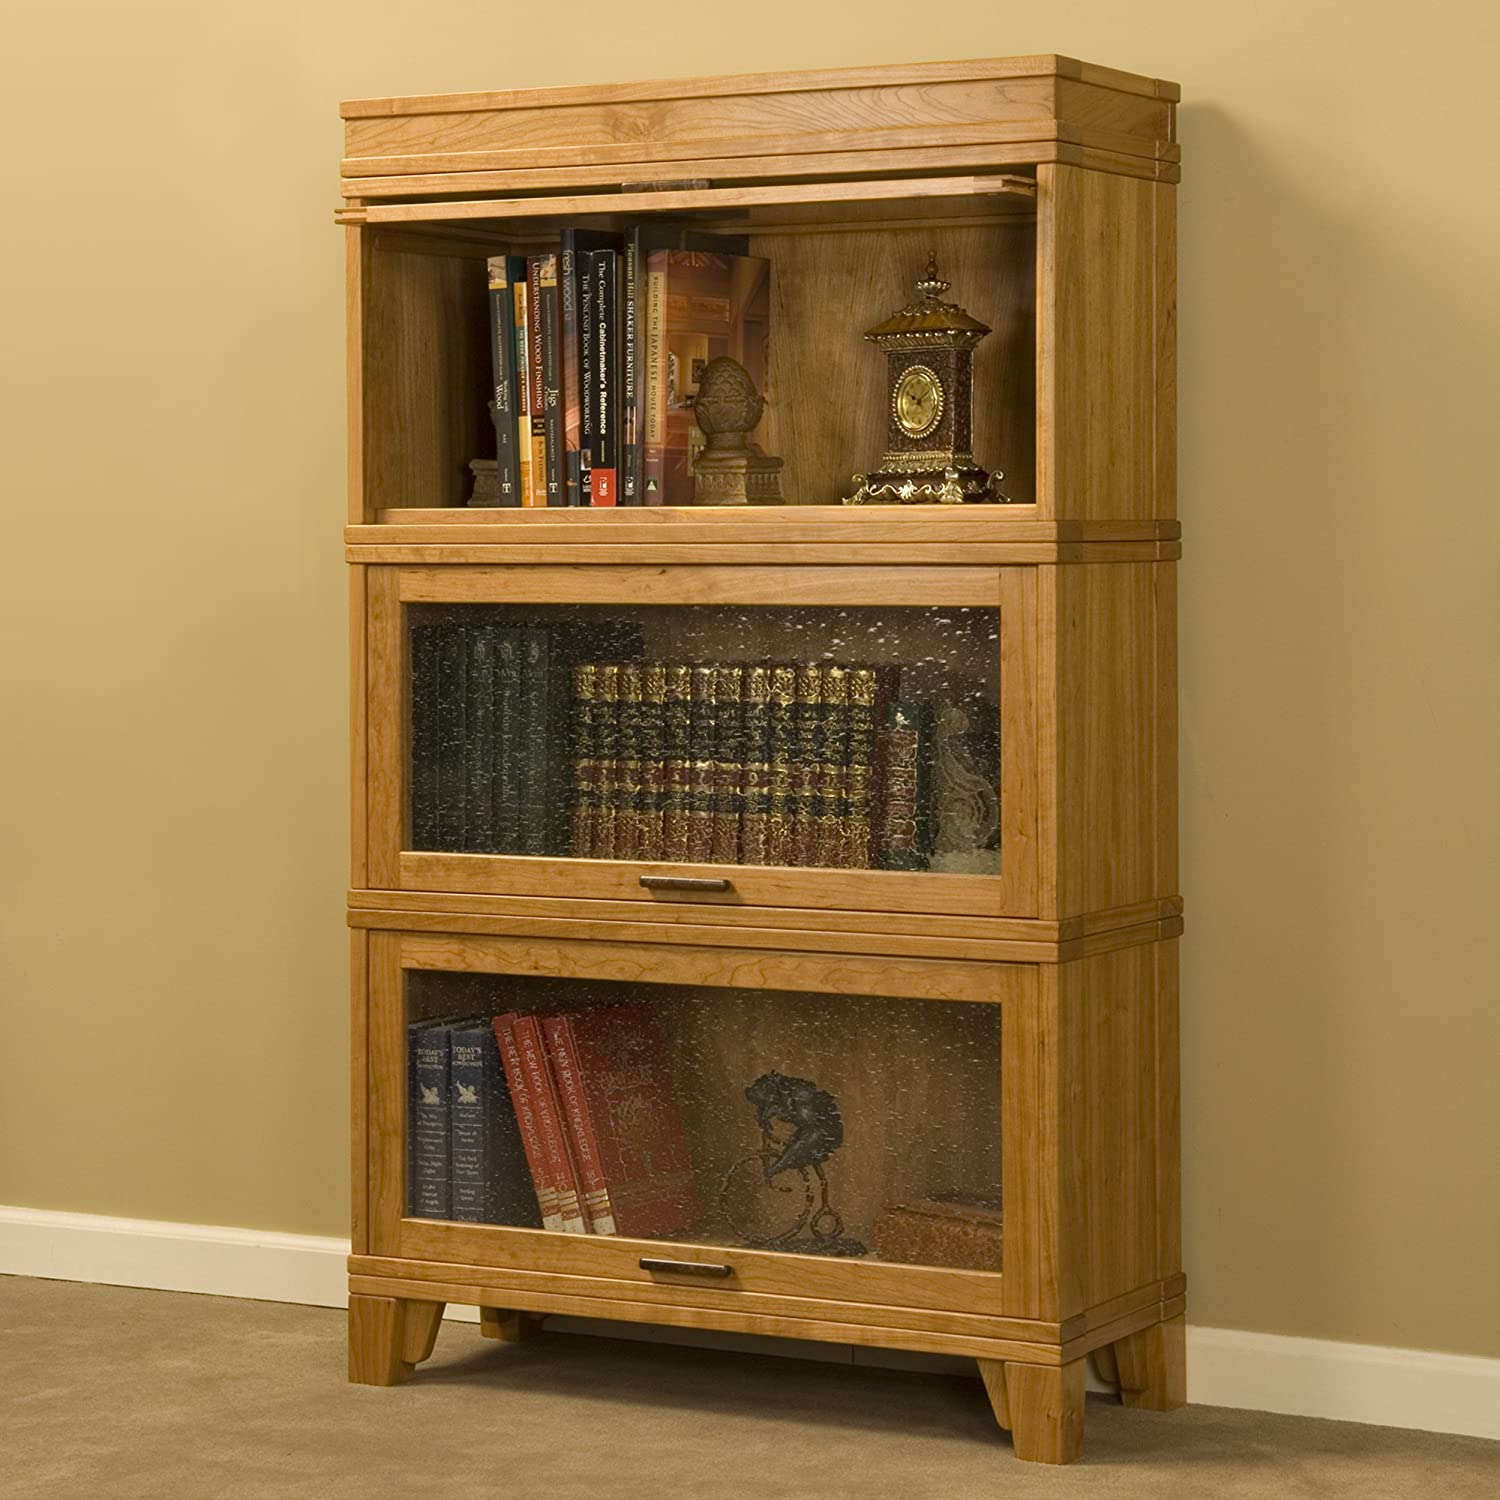 Woodworking Project Paper Plan To Build Barrister Bookcase Glass